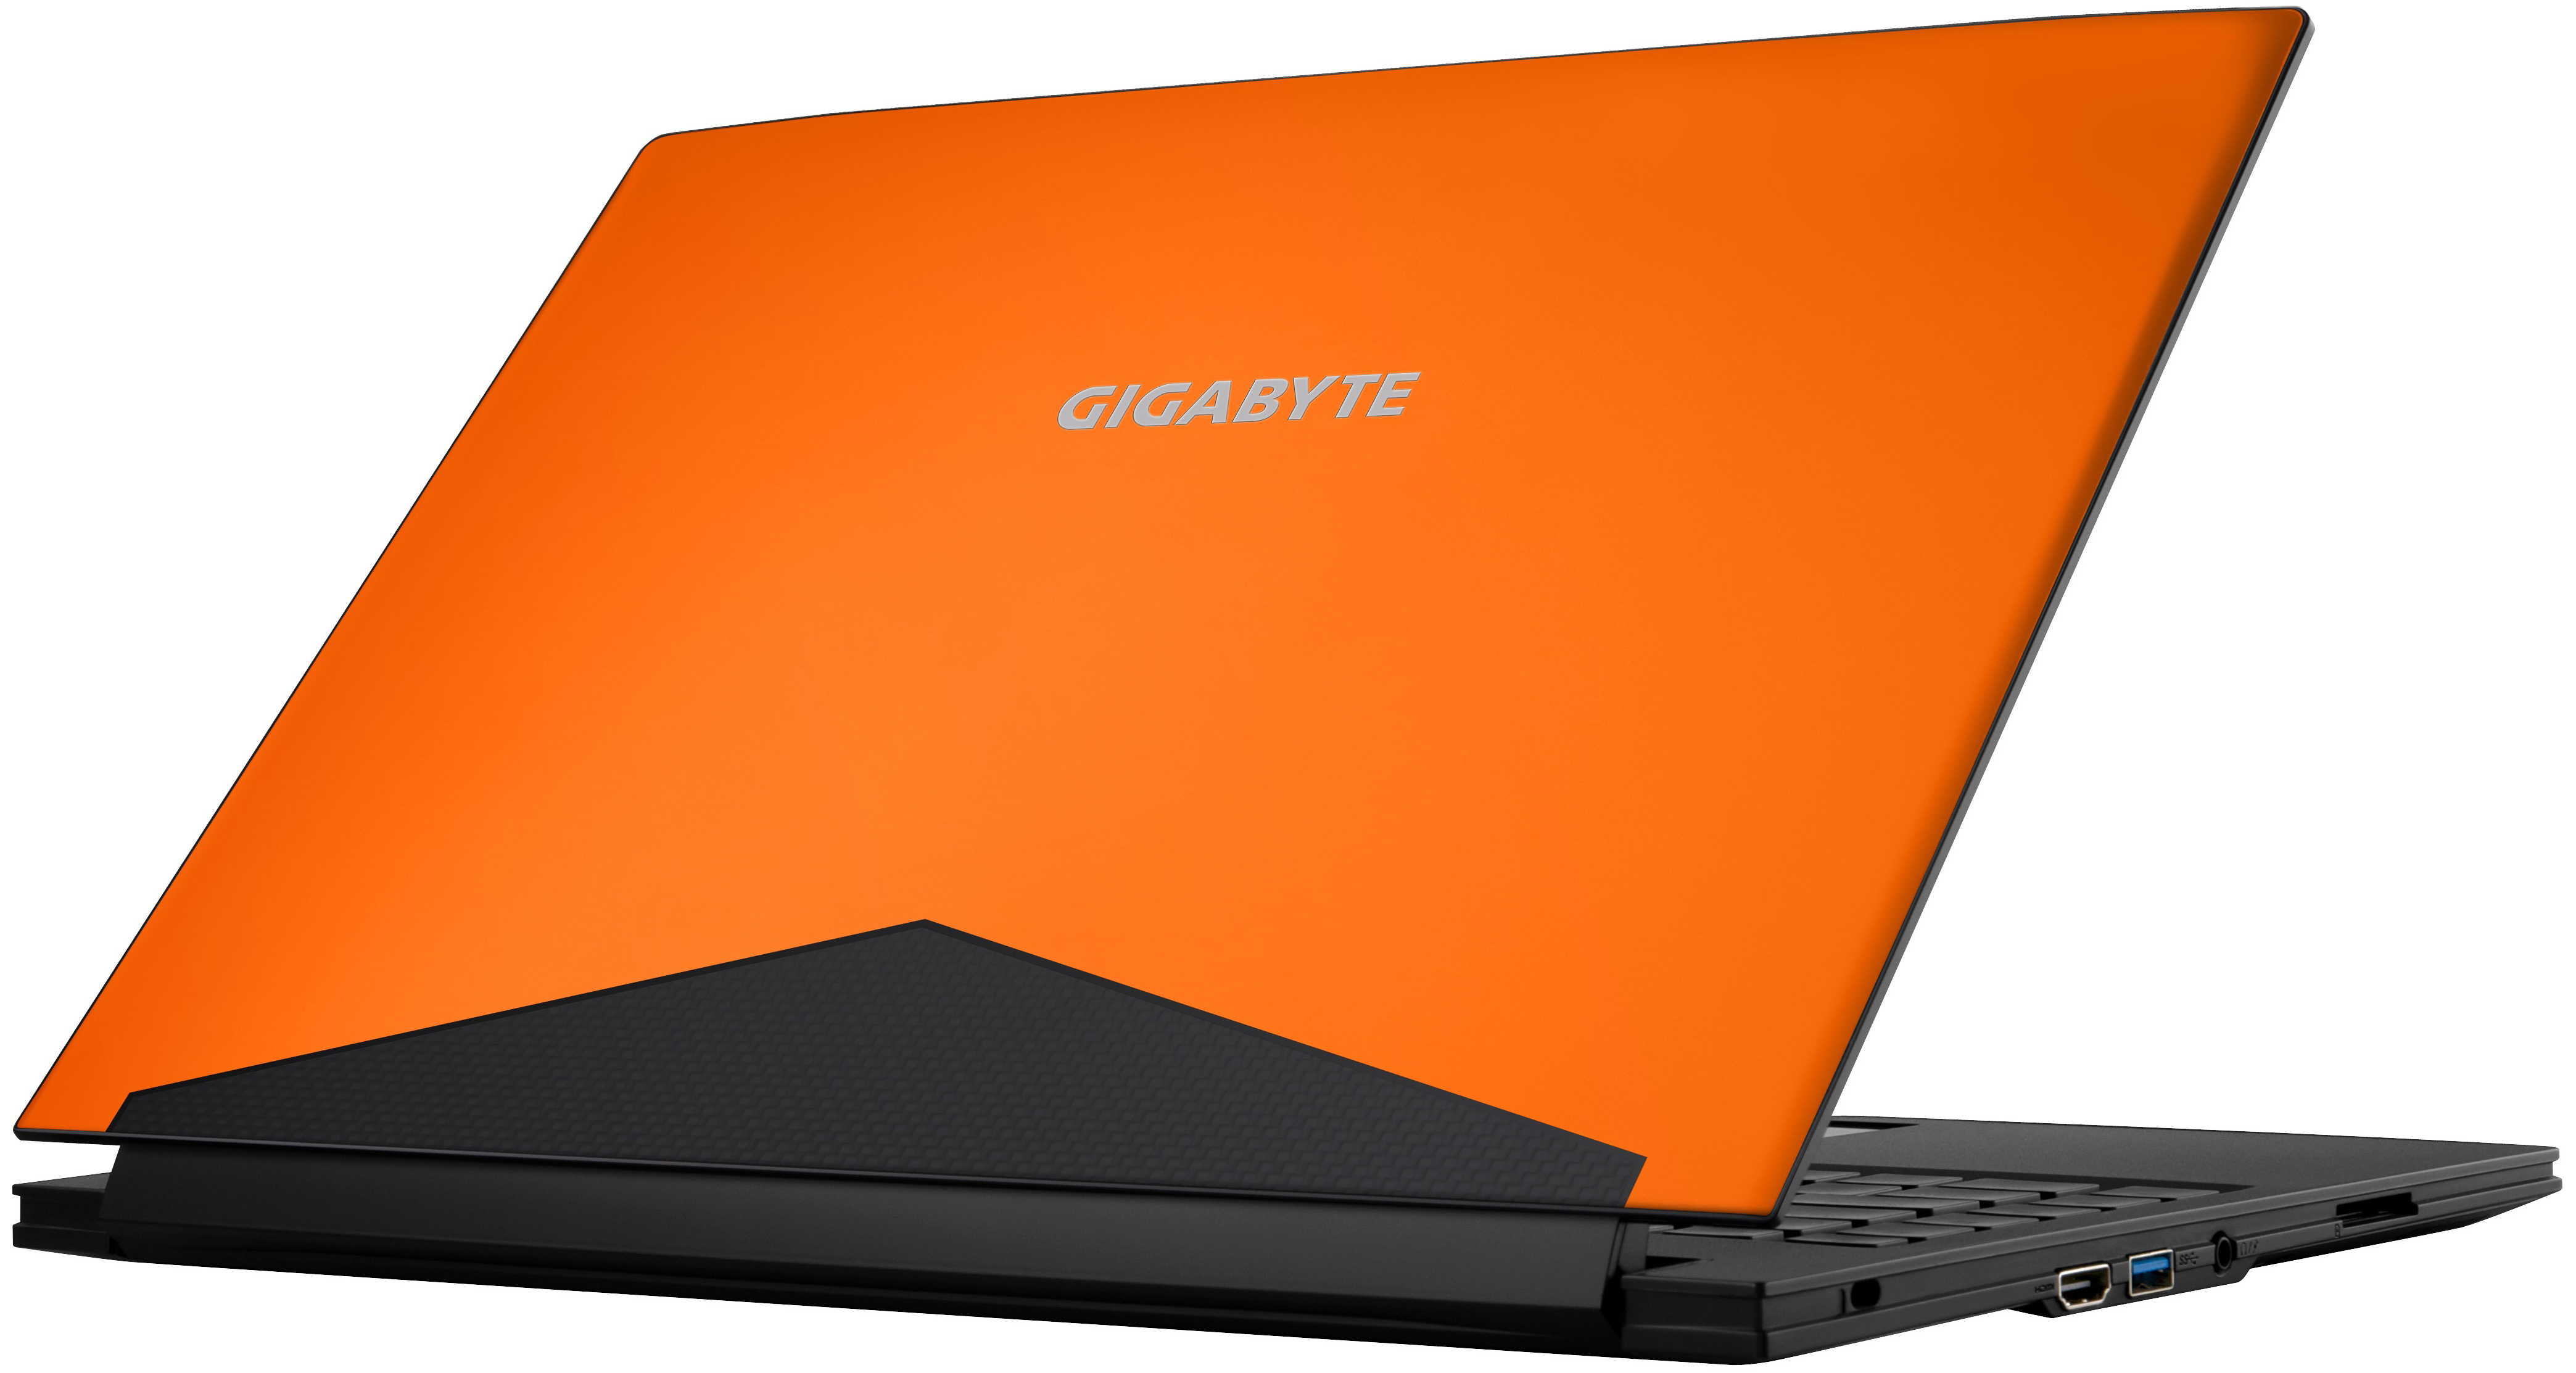 Gigabyte Q2006 Notebook Hotkey XP